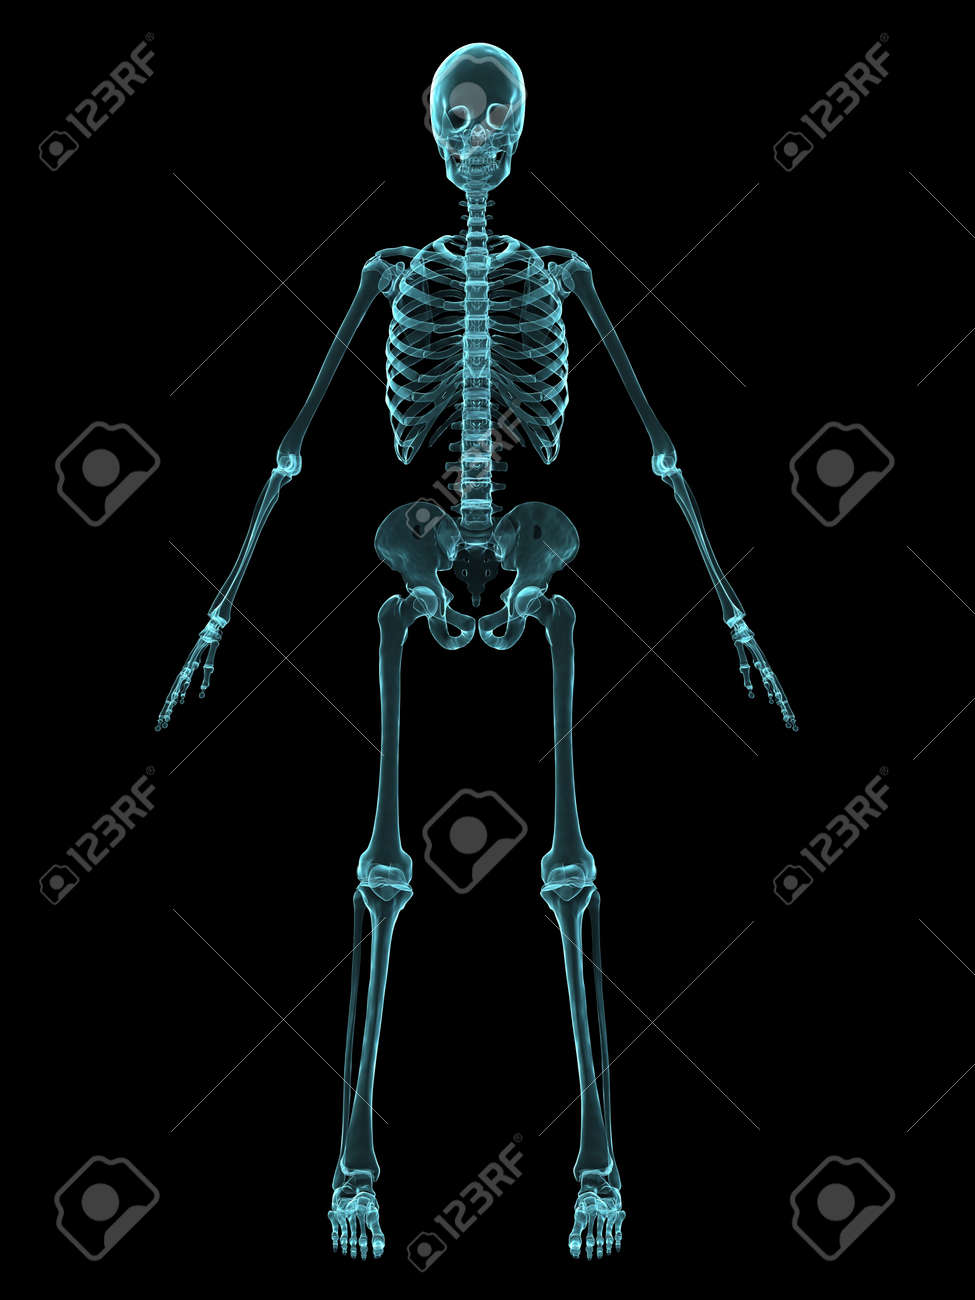 x-ray human skeleton - front view stock photo, picture and royalty, Skeleton